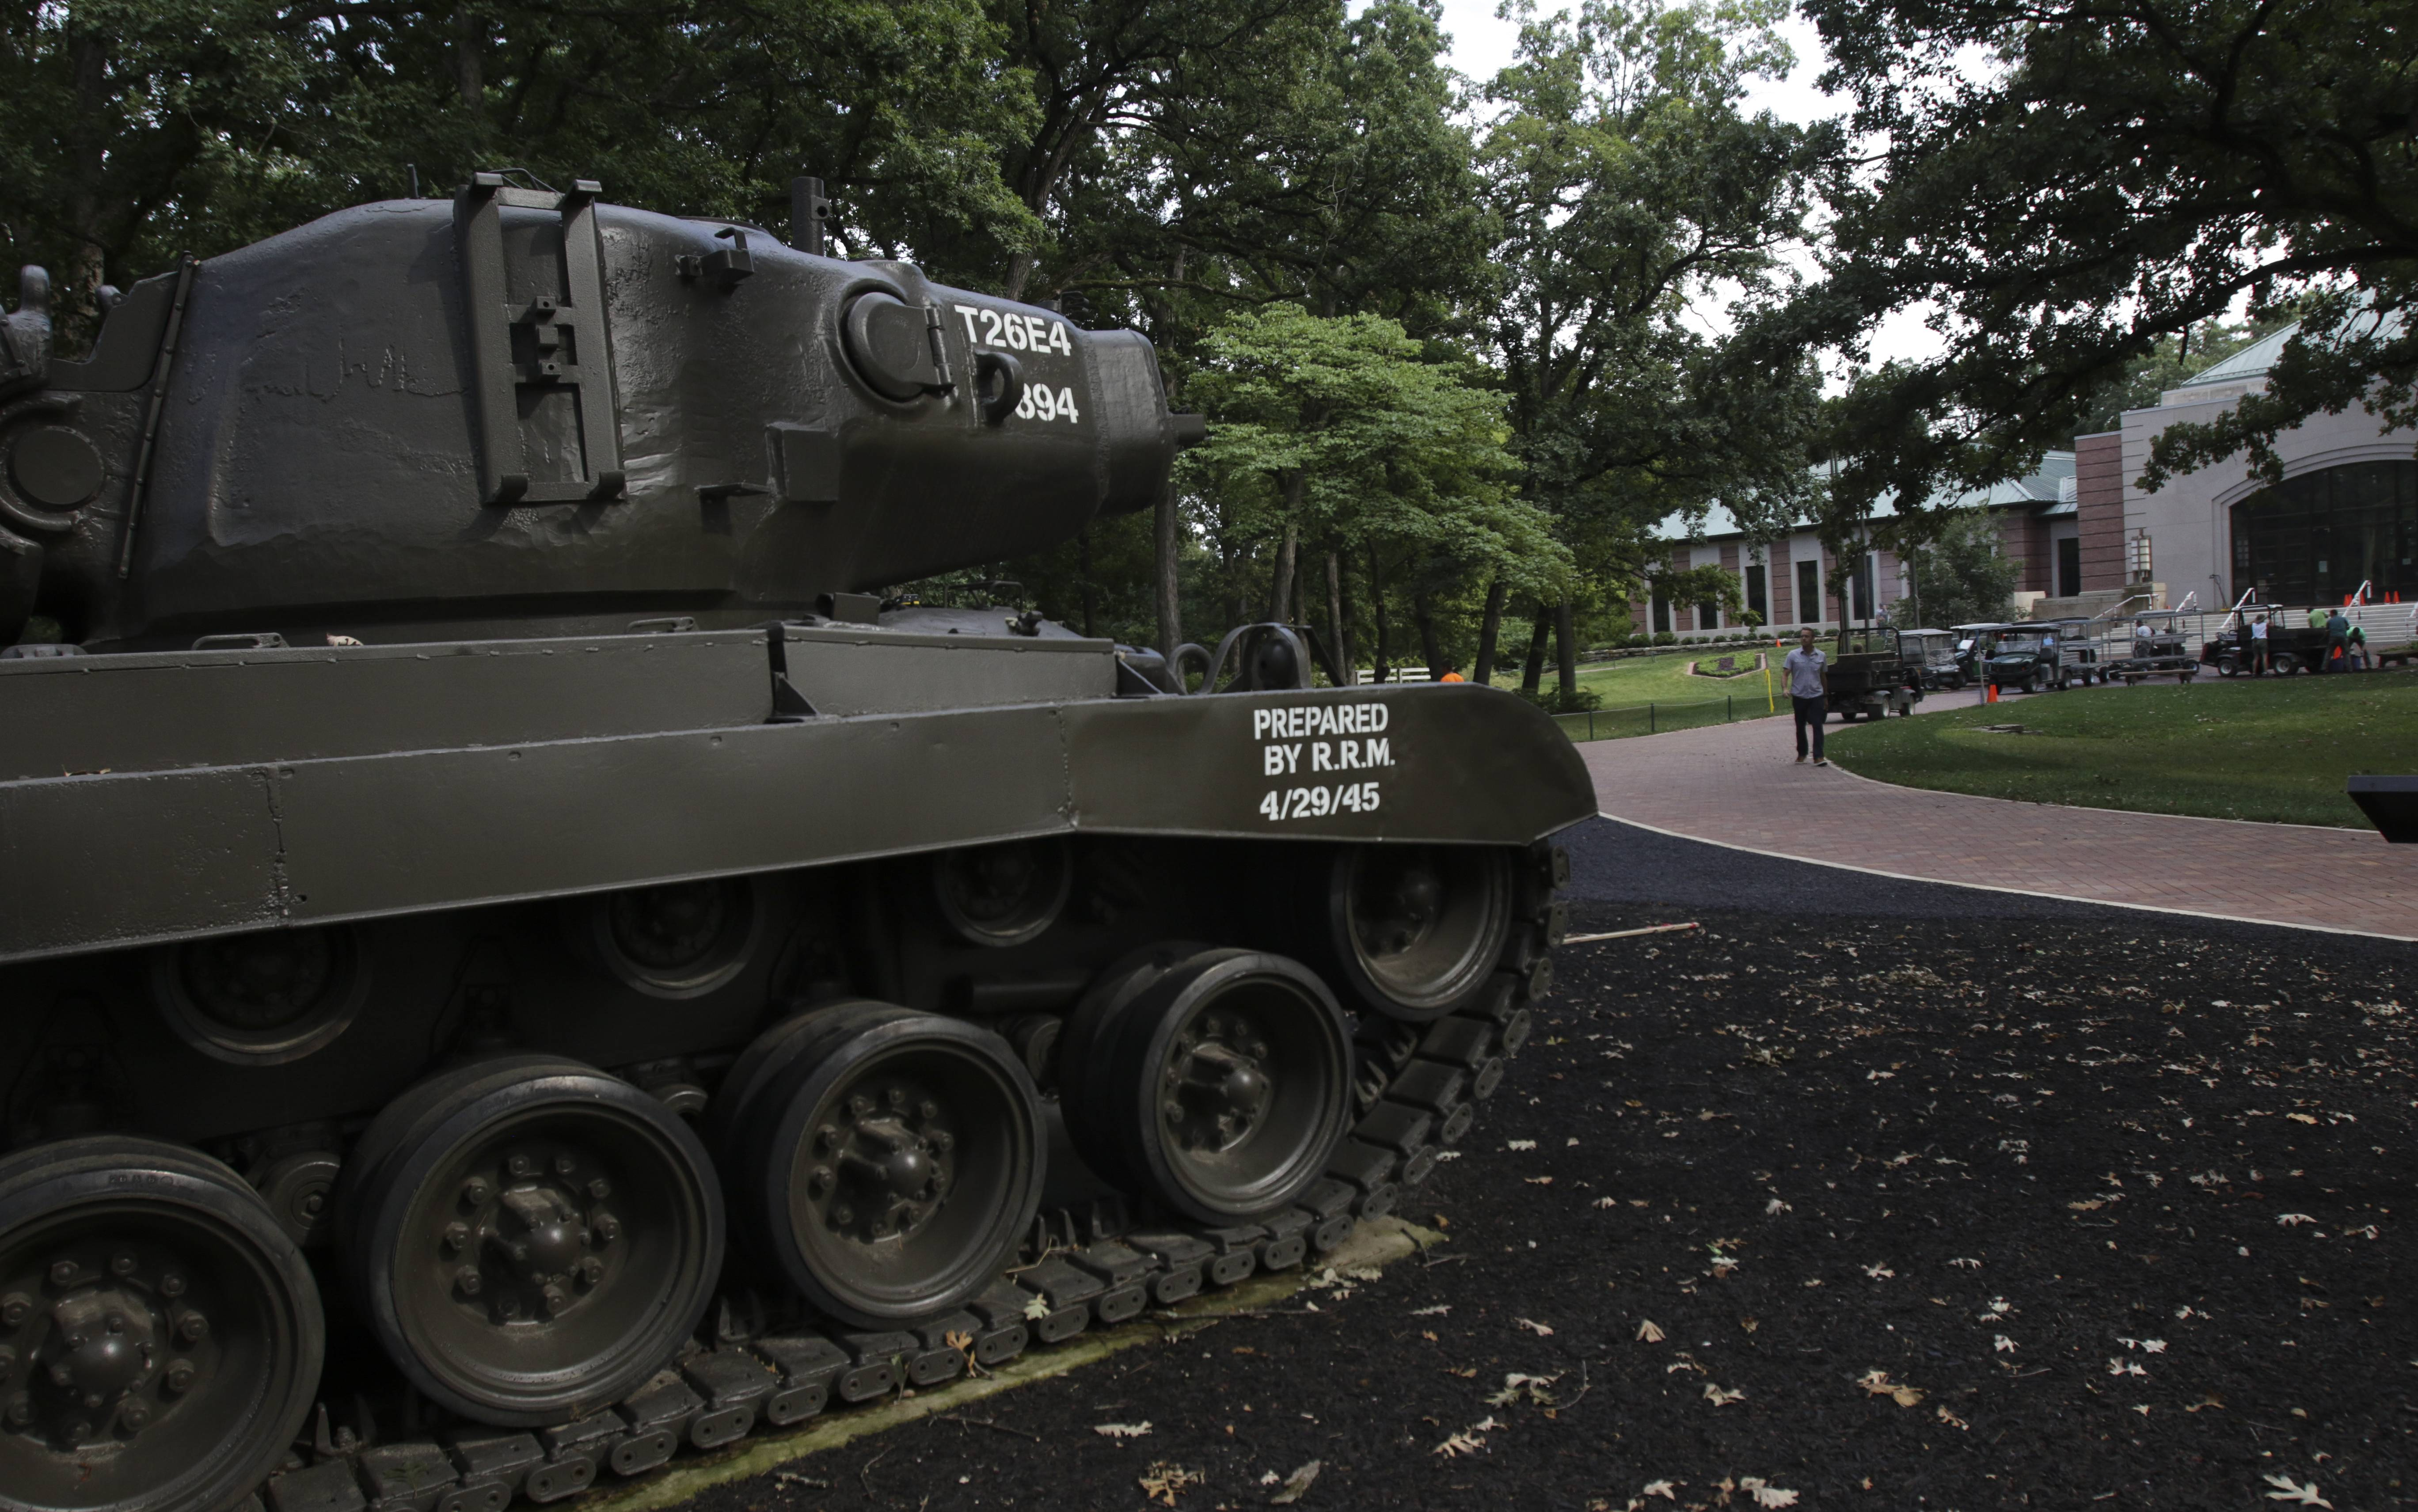 Tanks have been repainted and landscaping updated in a park outside the for the First Division Museum in Wheaton.